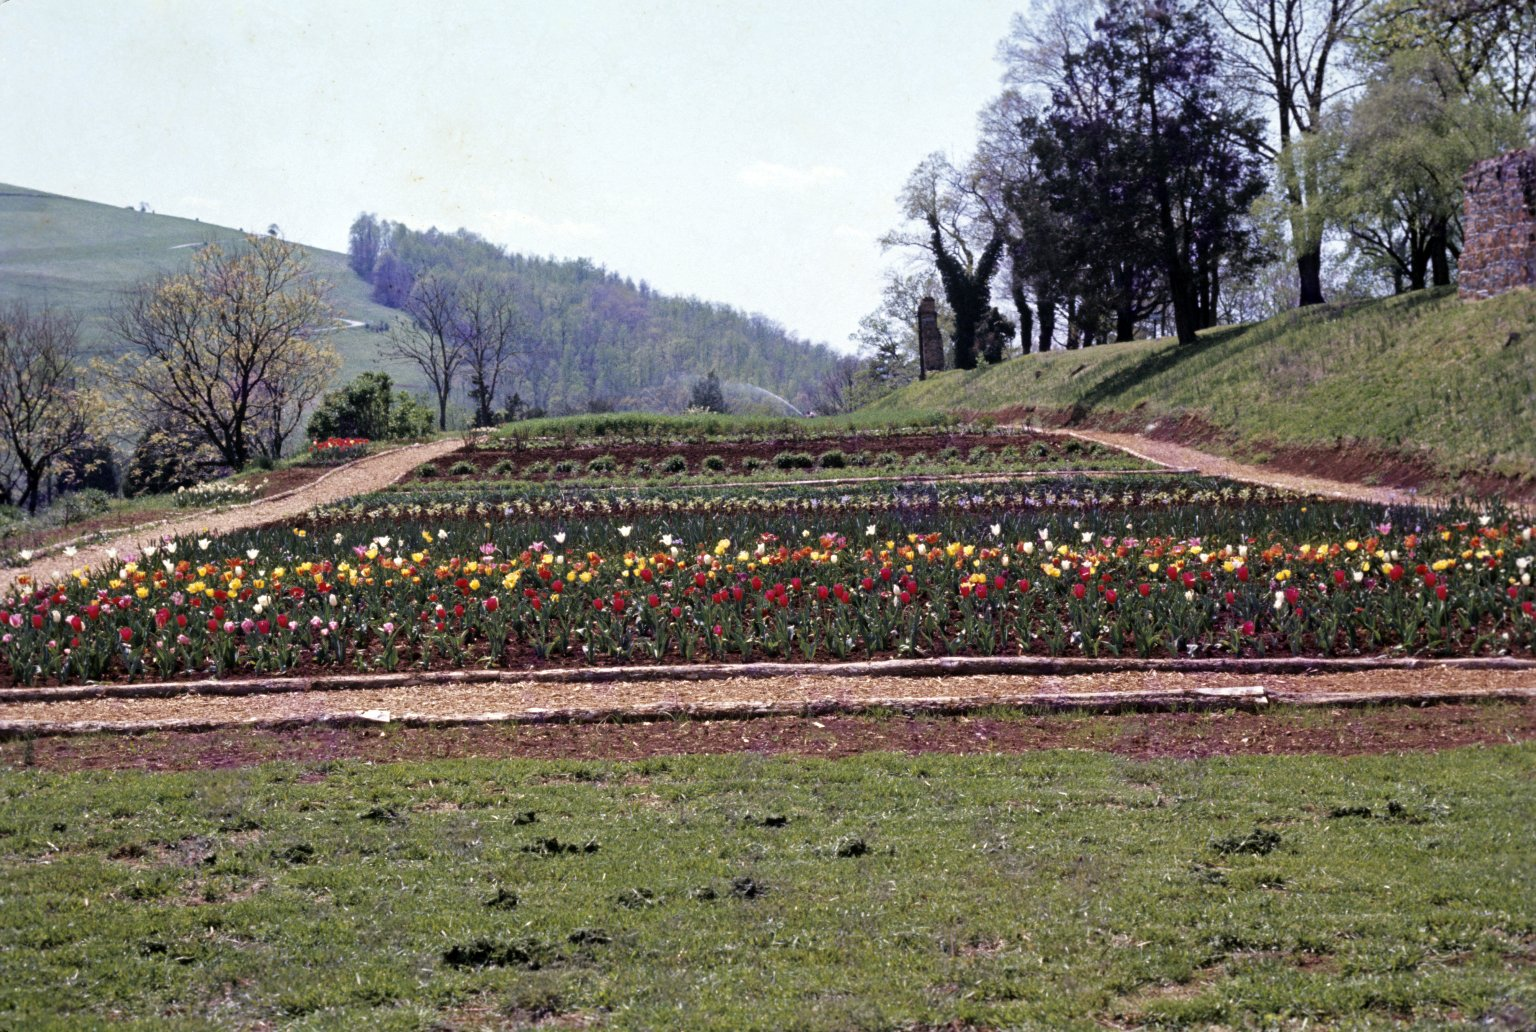 Monticello, vegetable garden, early restoration (planted with tulips)